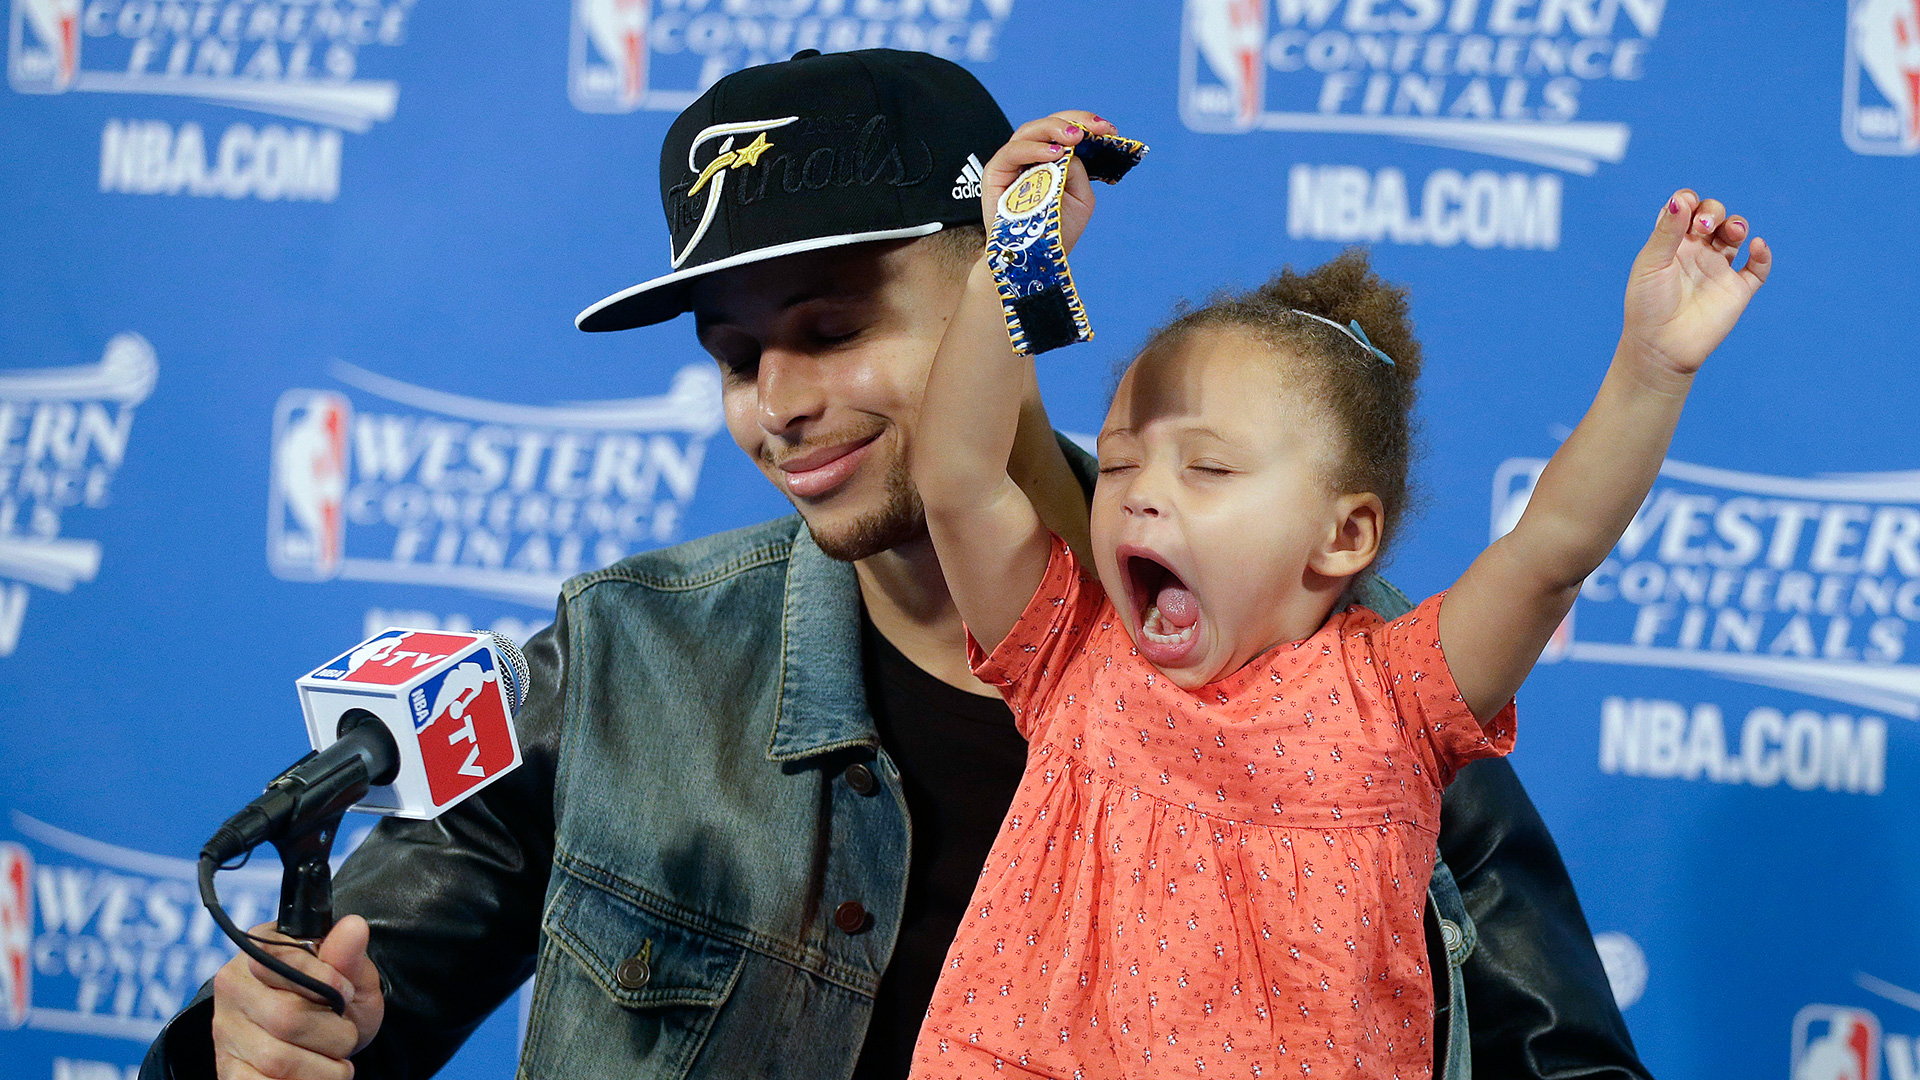 ayesha curry explains how she parents her daughter  riley